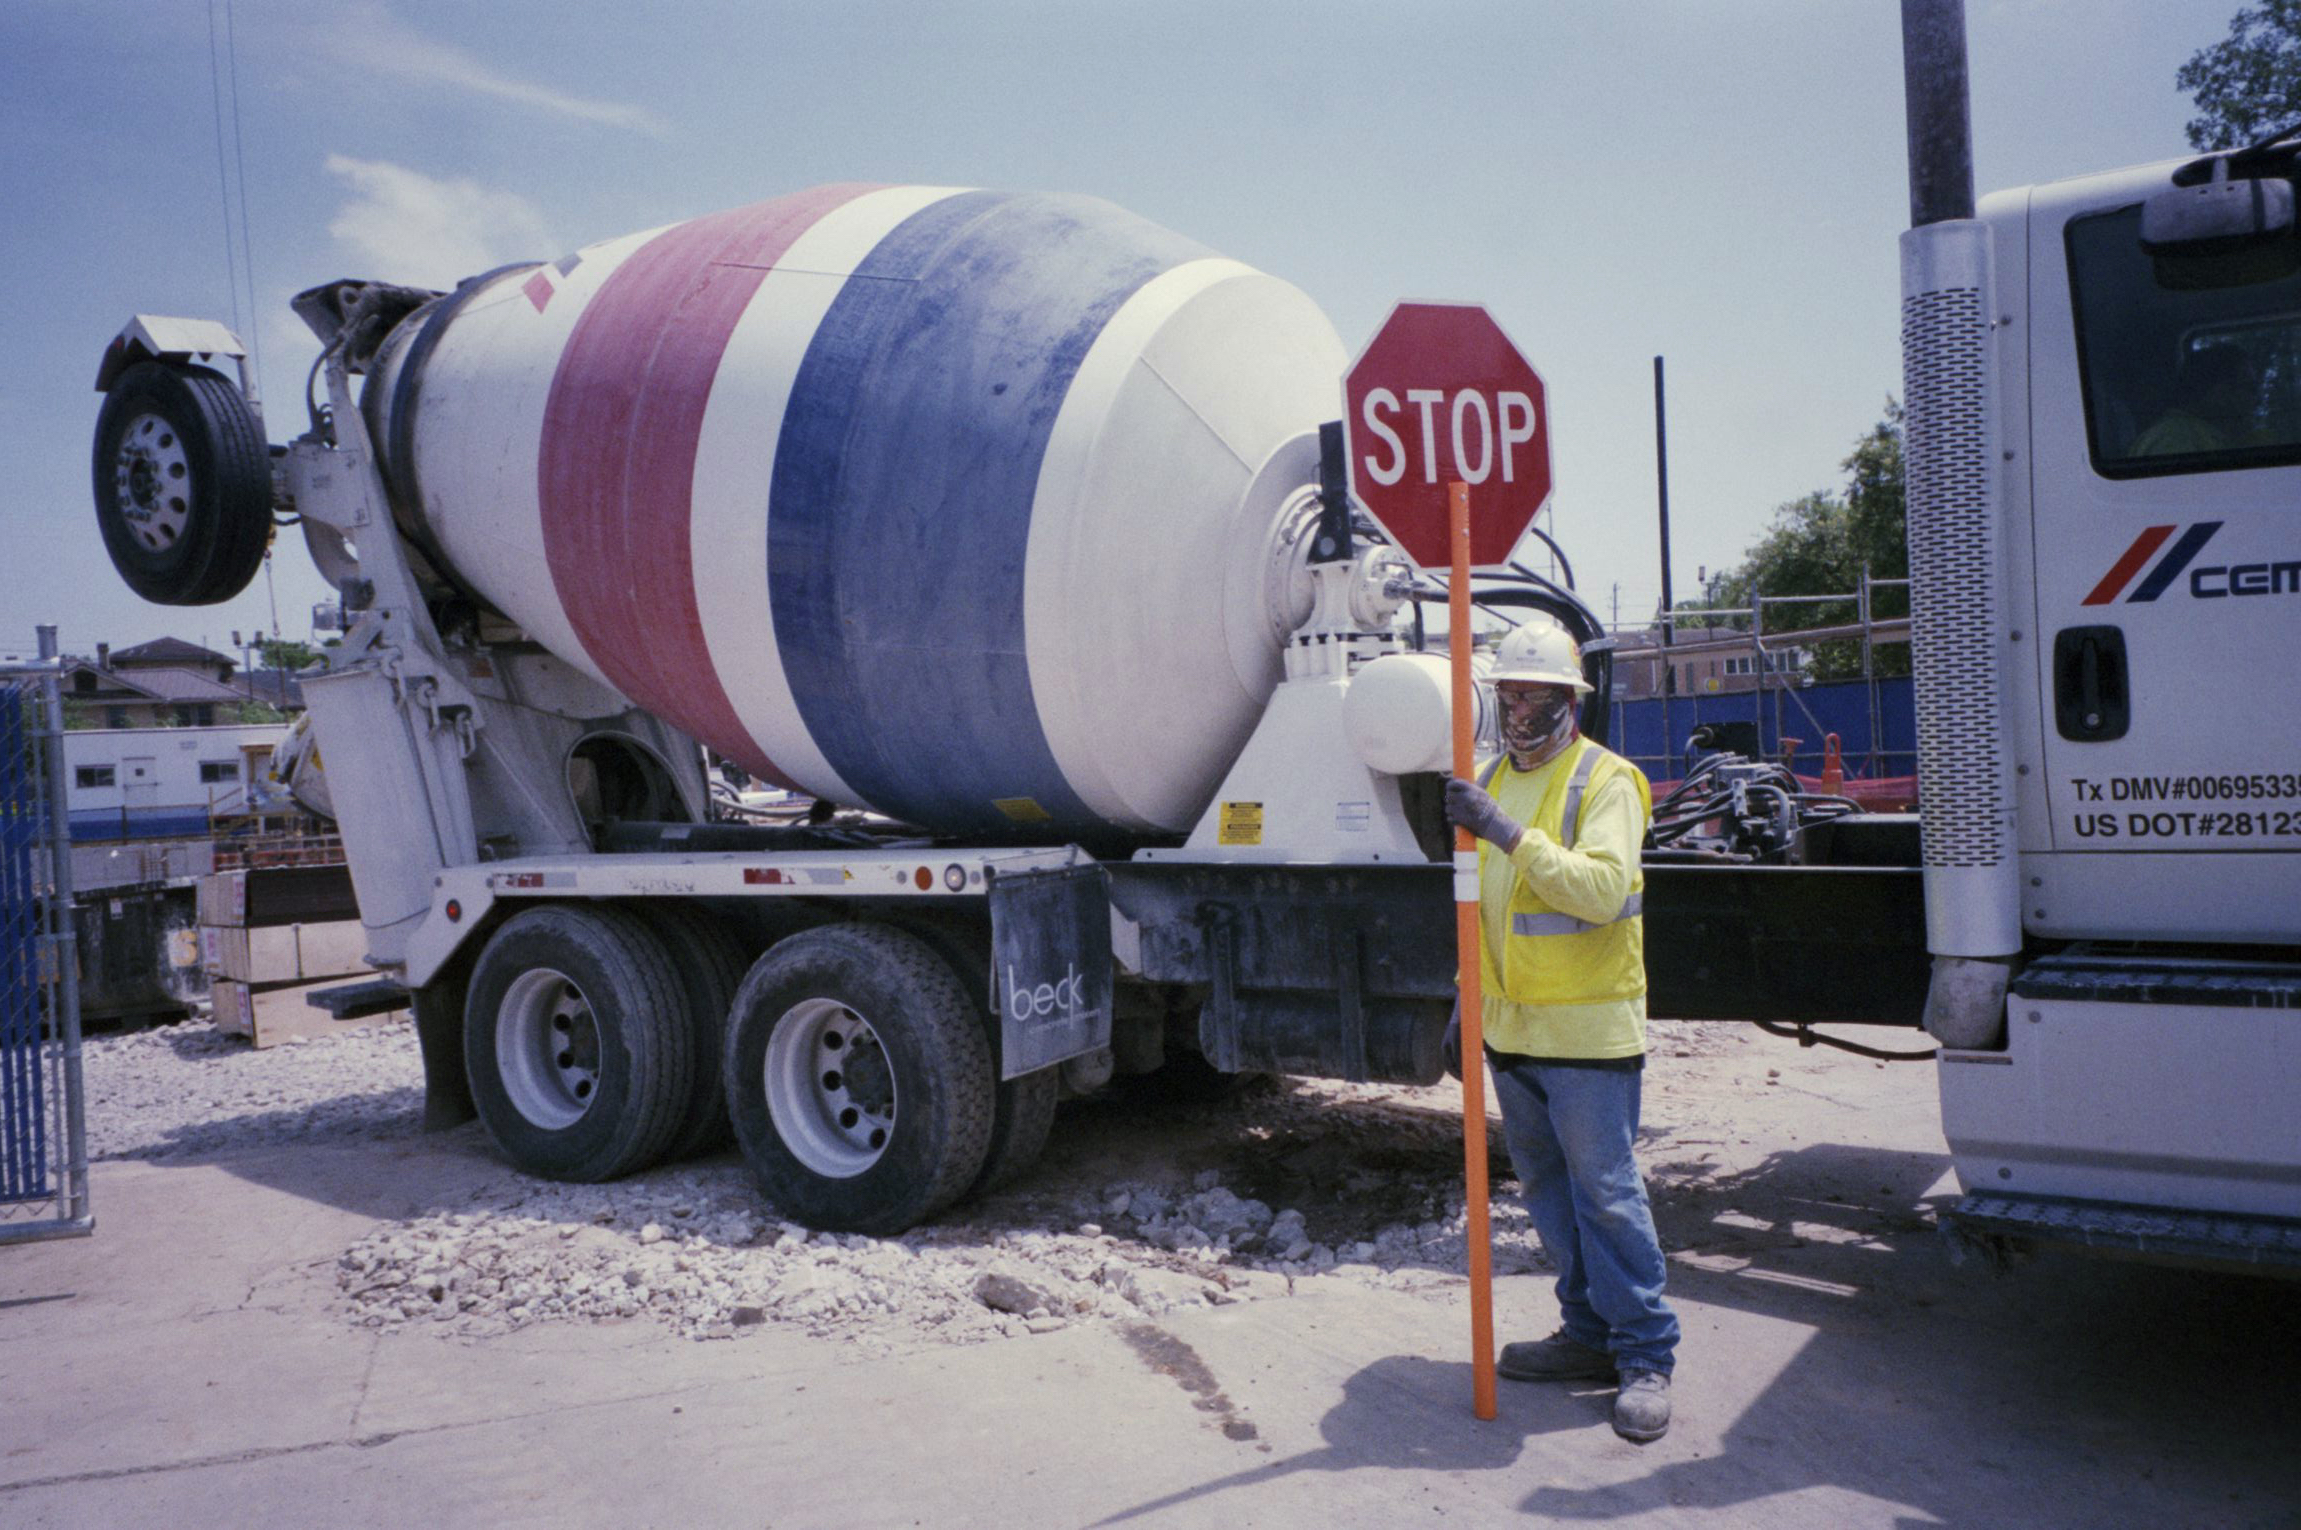 cody-swann-photo-274-stop-construction